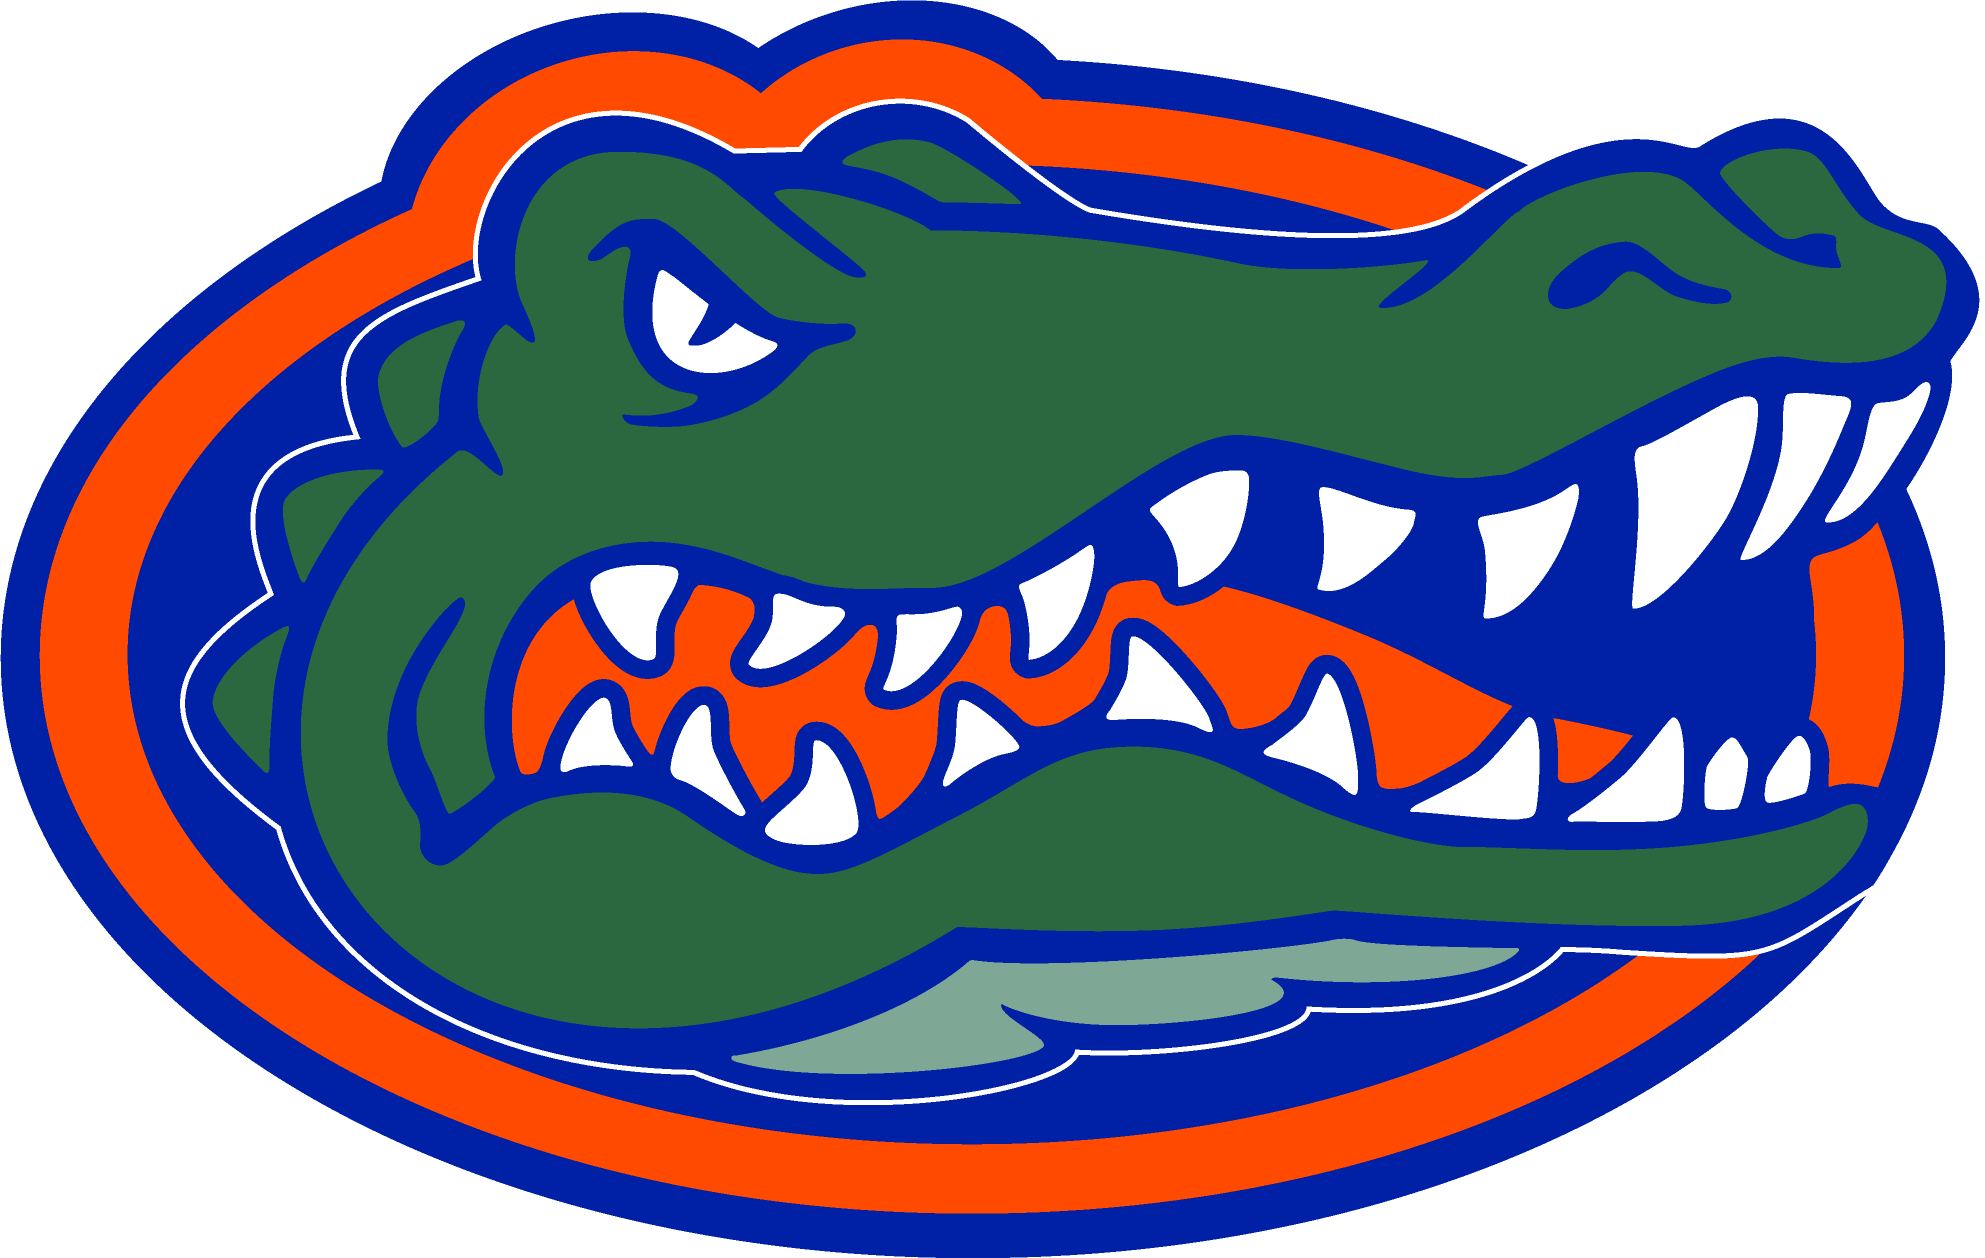 Images For > University Of Florida Logo Vector.